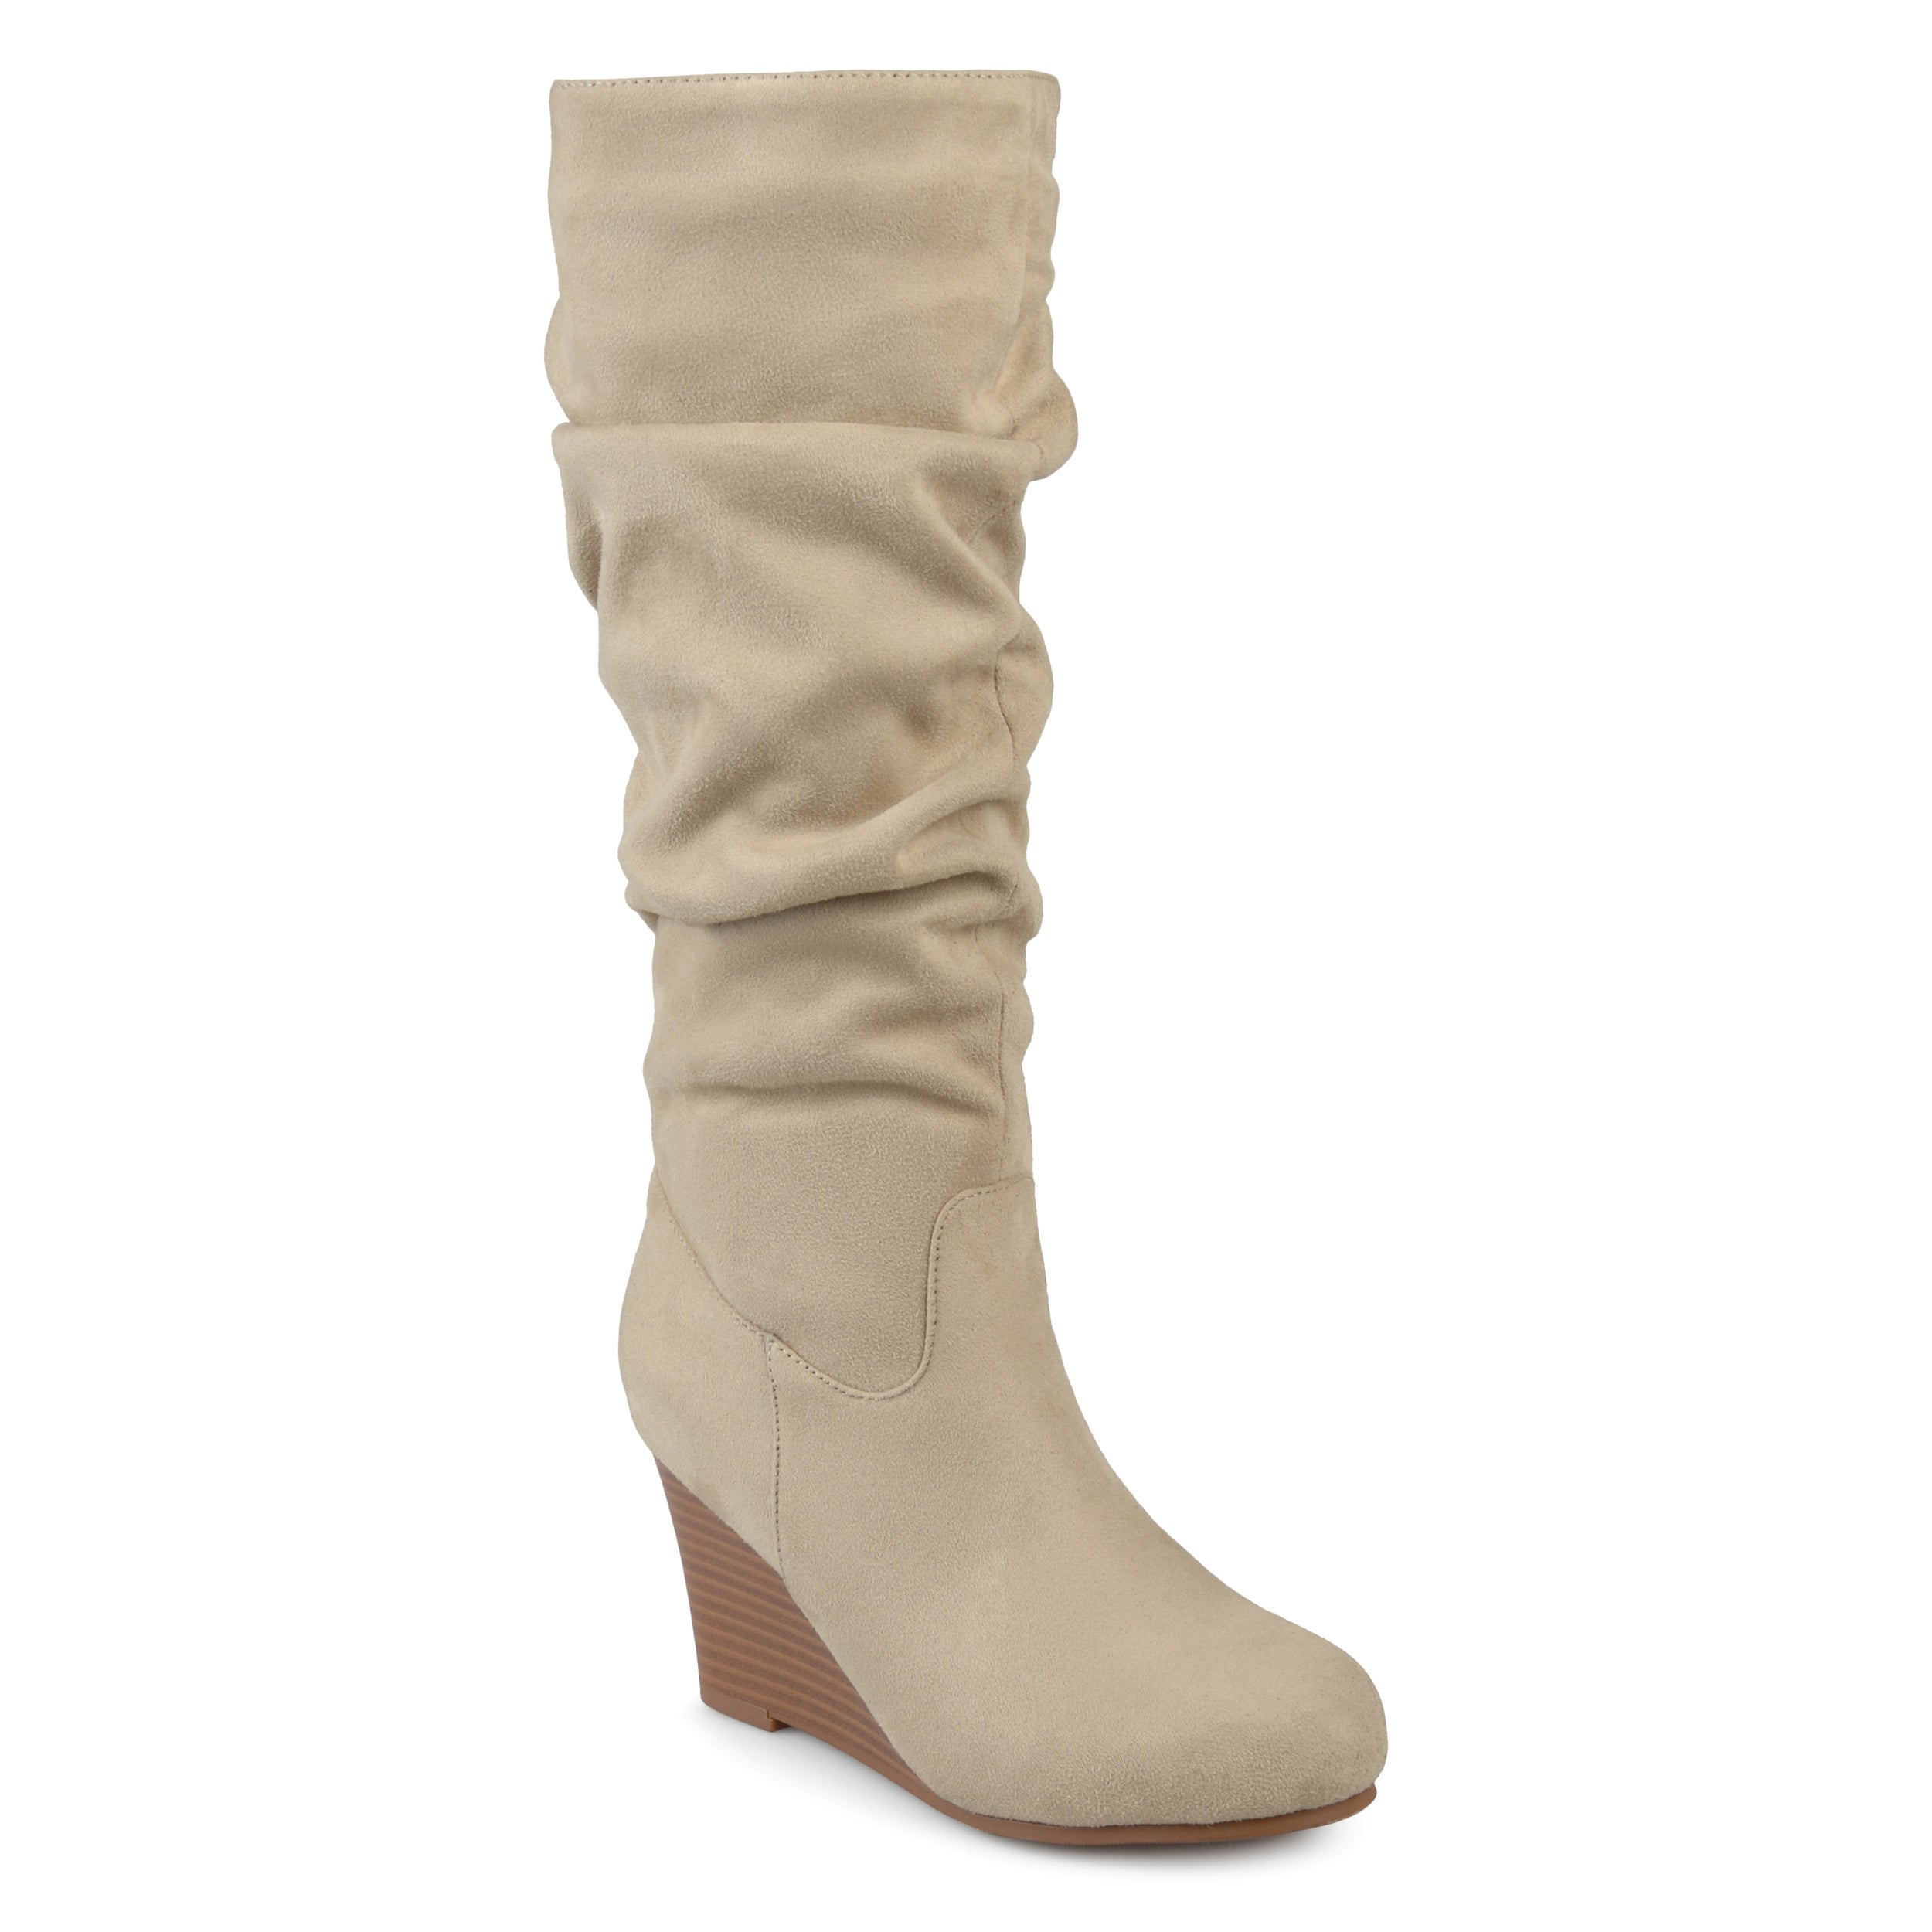 6b9ec13f691 Shop Journee Collection Women s  Haze  Regular and Wide Calf Slouchy Mid- calf Wedge Boots - On Sale - Free Shipping Today - Overstock - 17011776